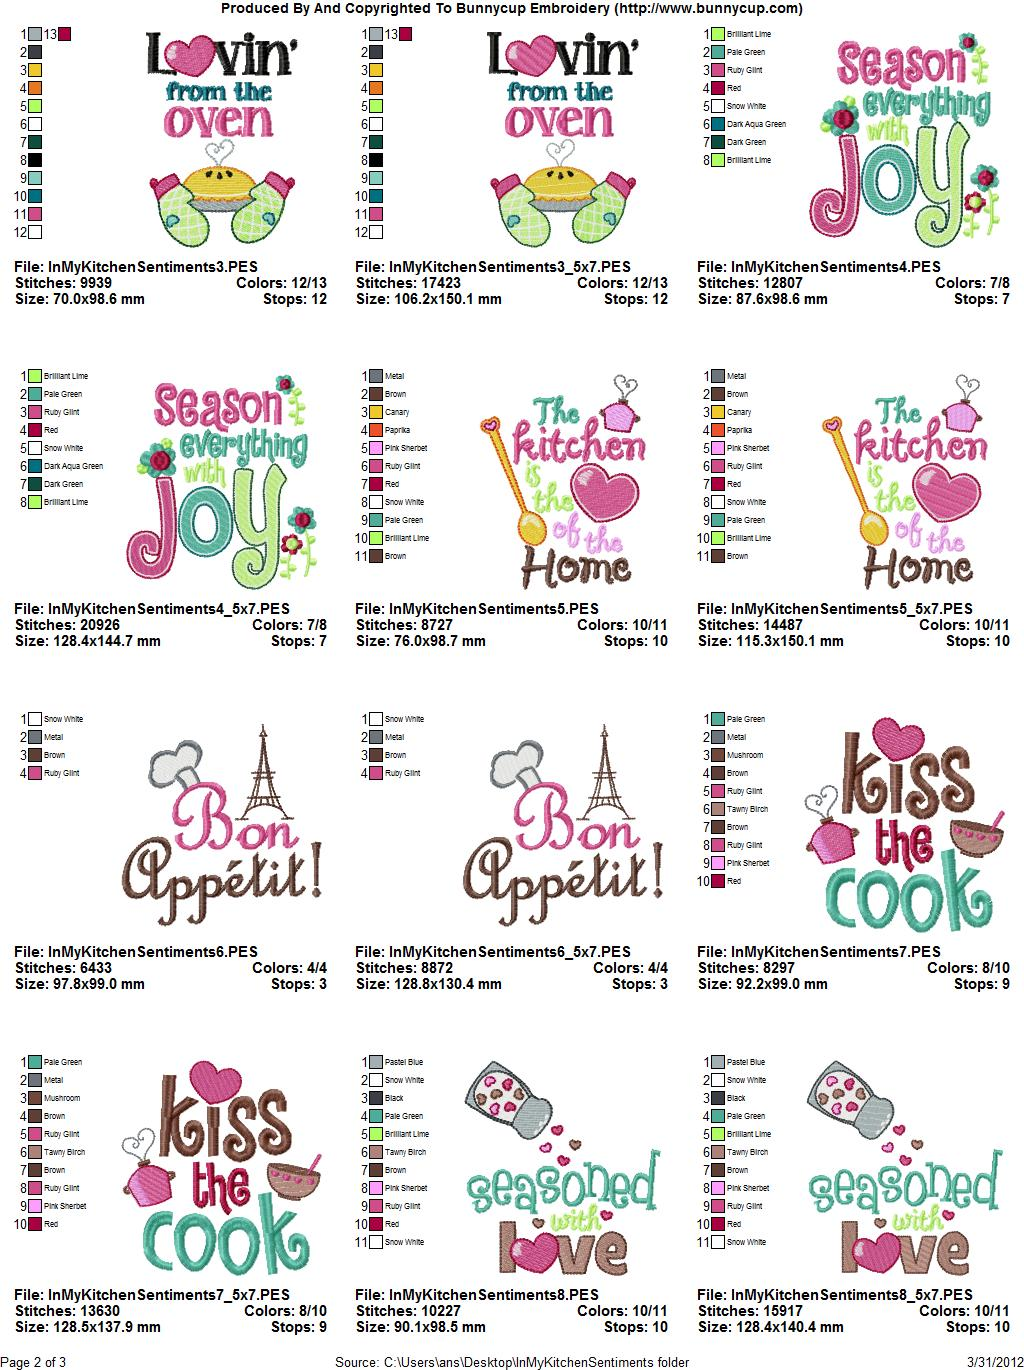 In my kitchen sentiments embroidery designs bunnycup - Free embroidery designs for kitchen towels ...